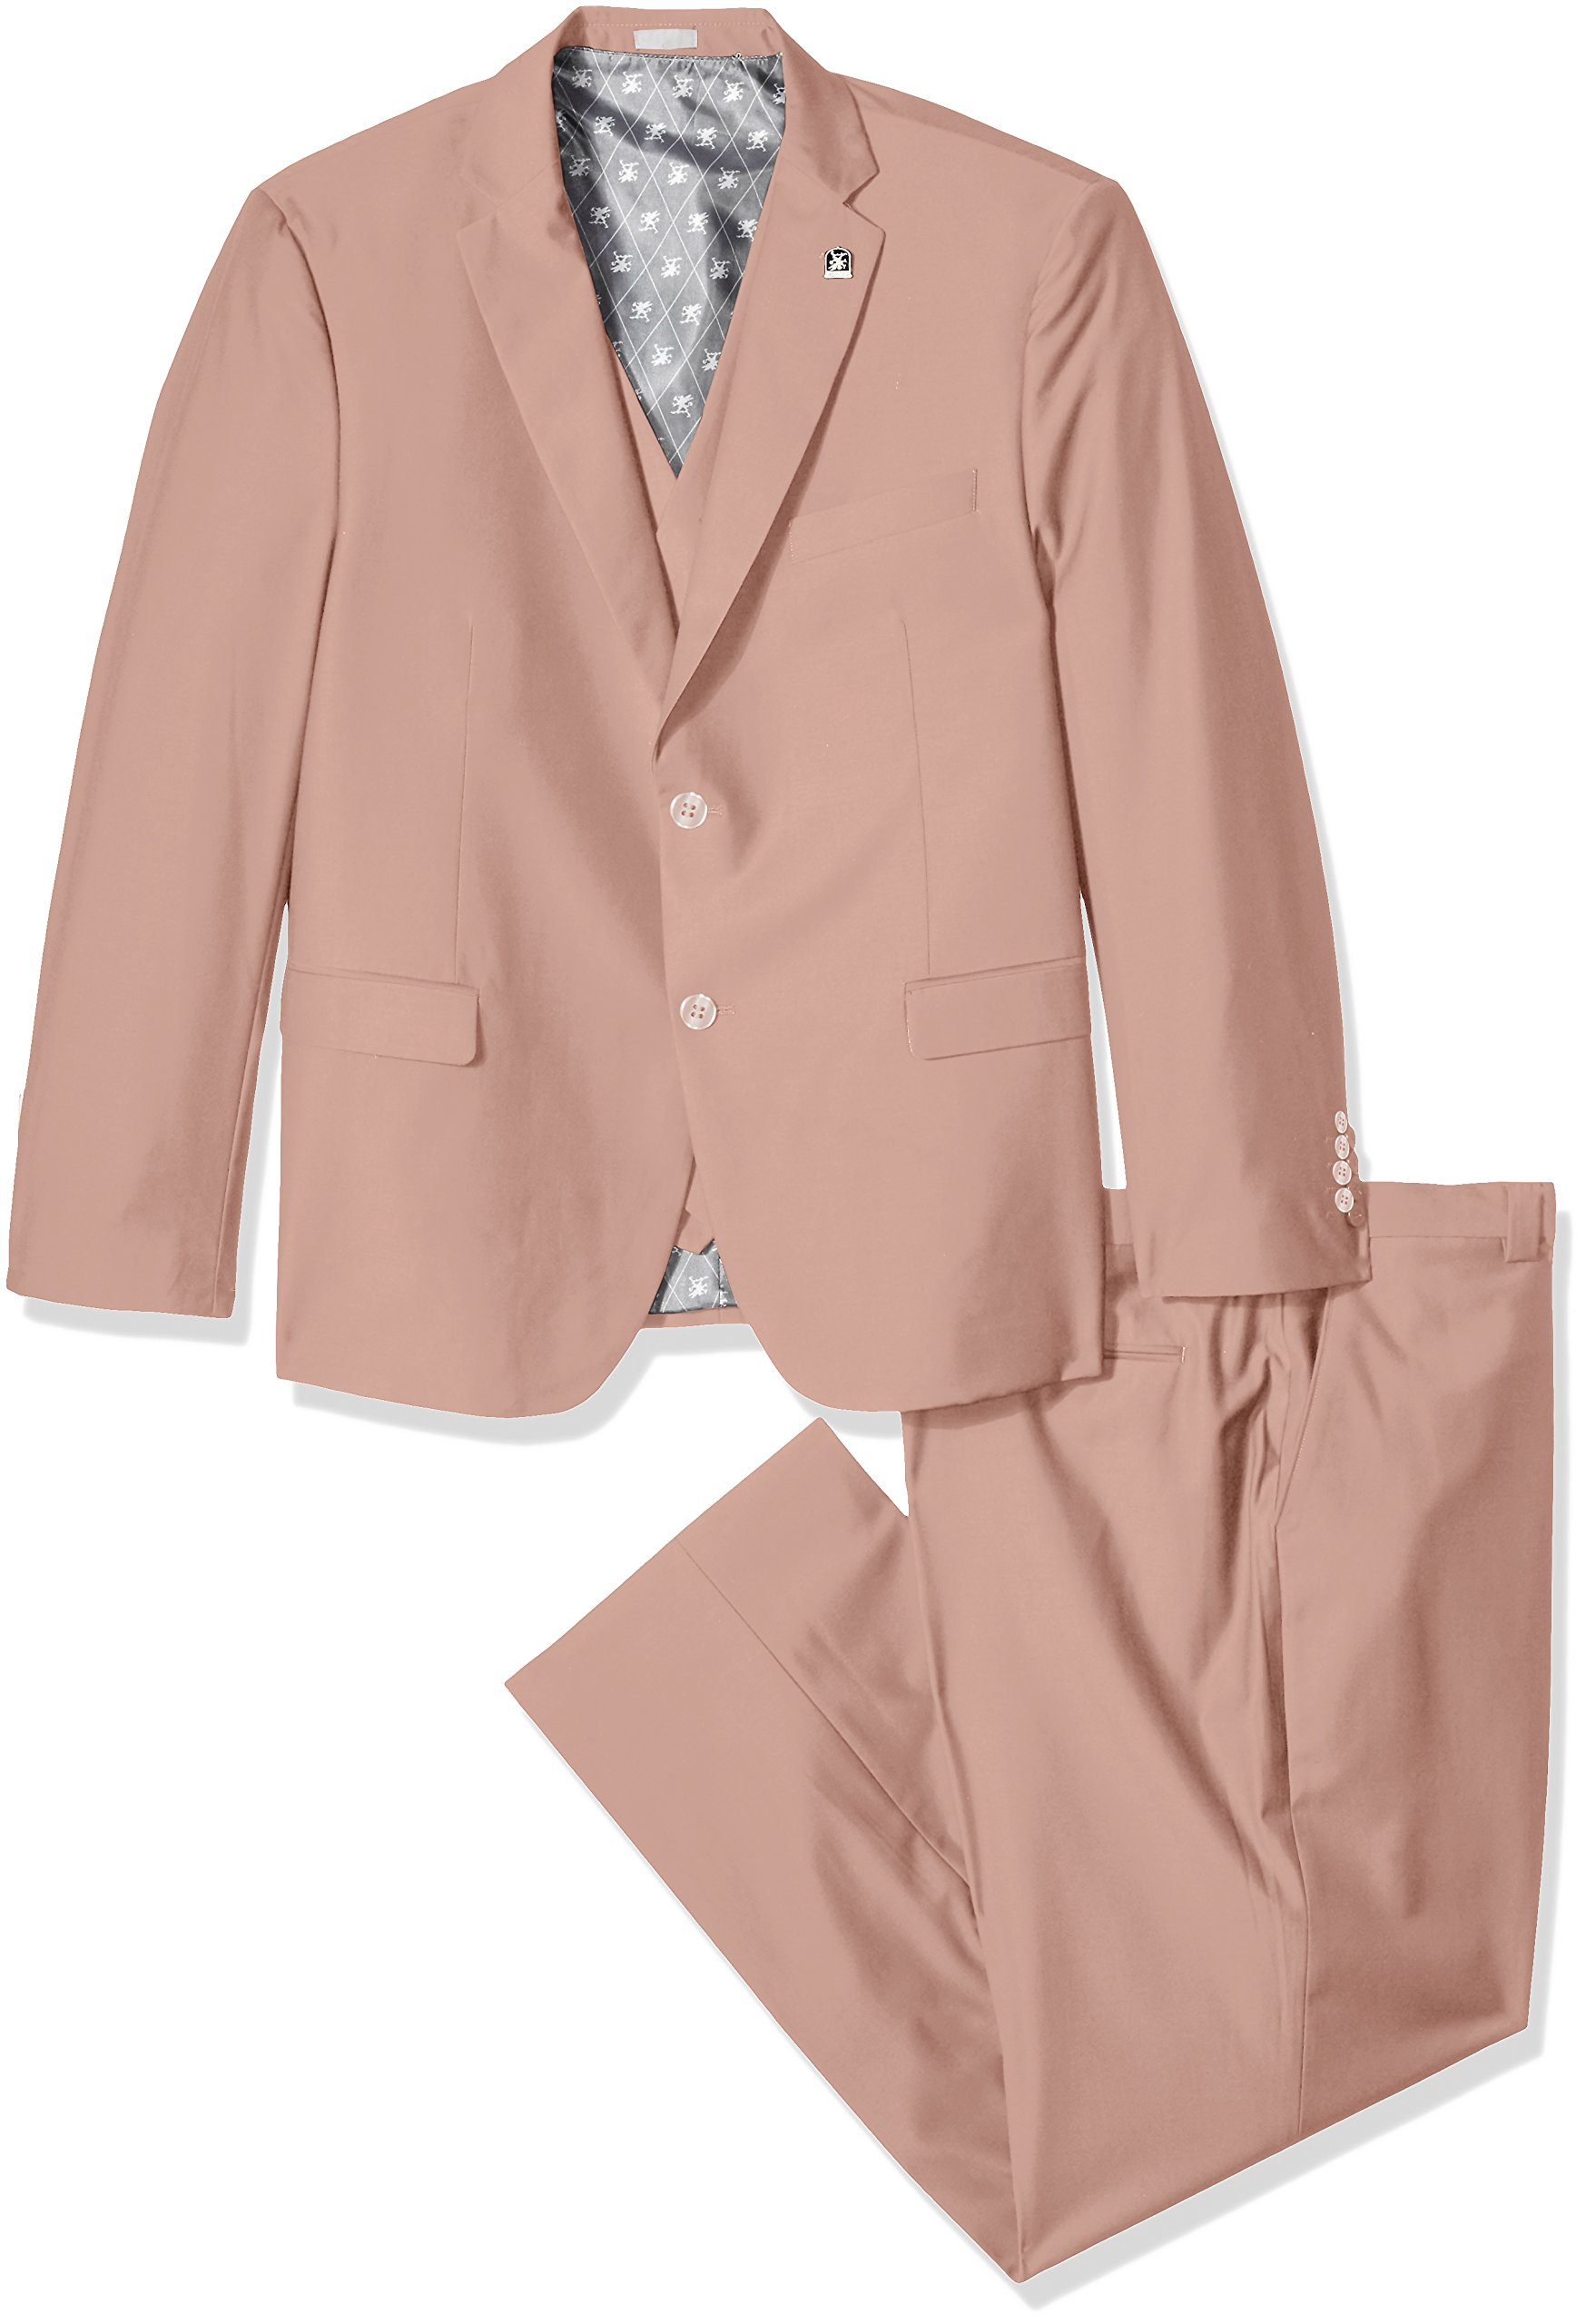 STACY ADAMS Men's Tall Bud Big & Tall Vested Slim Fit Suit, Misty Rose 56 Long